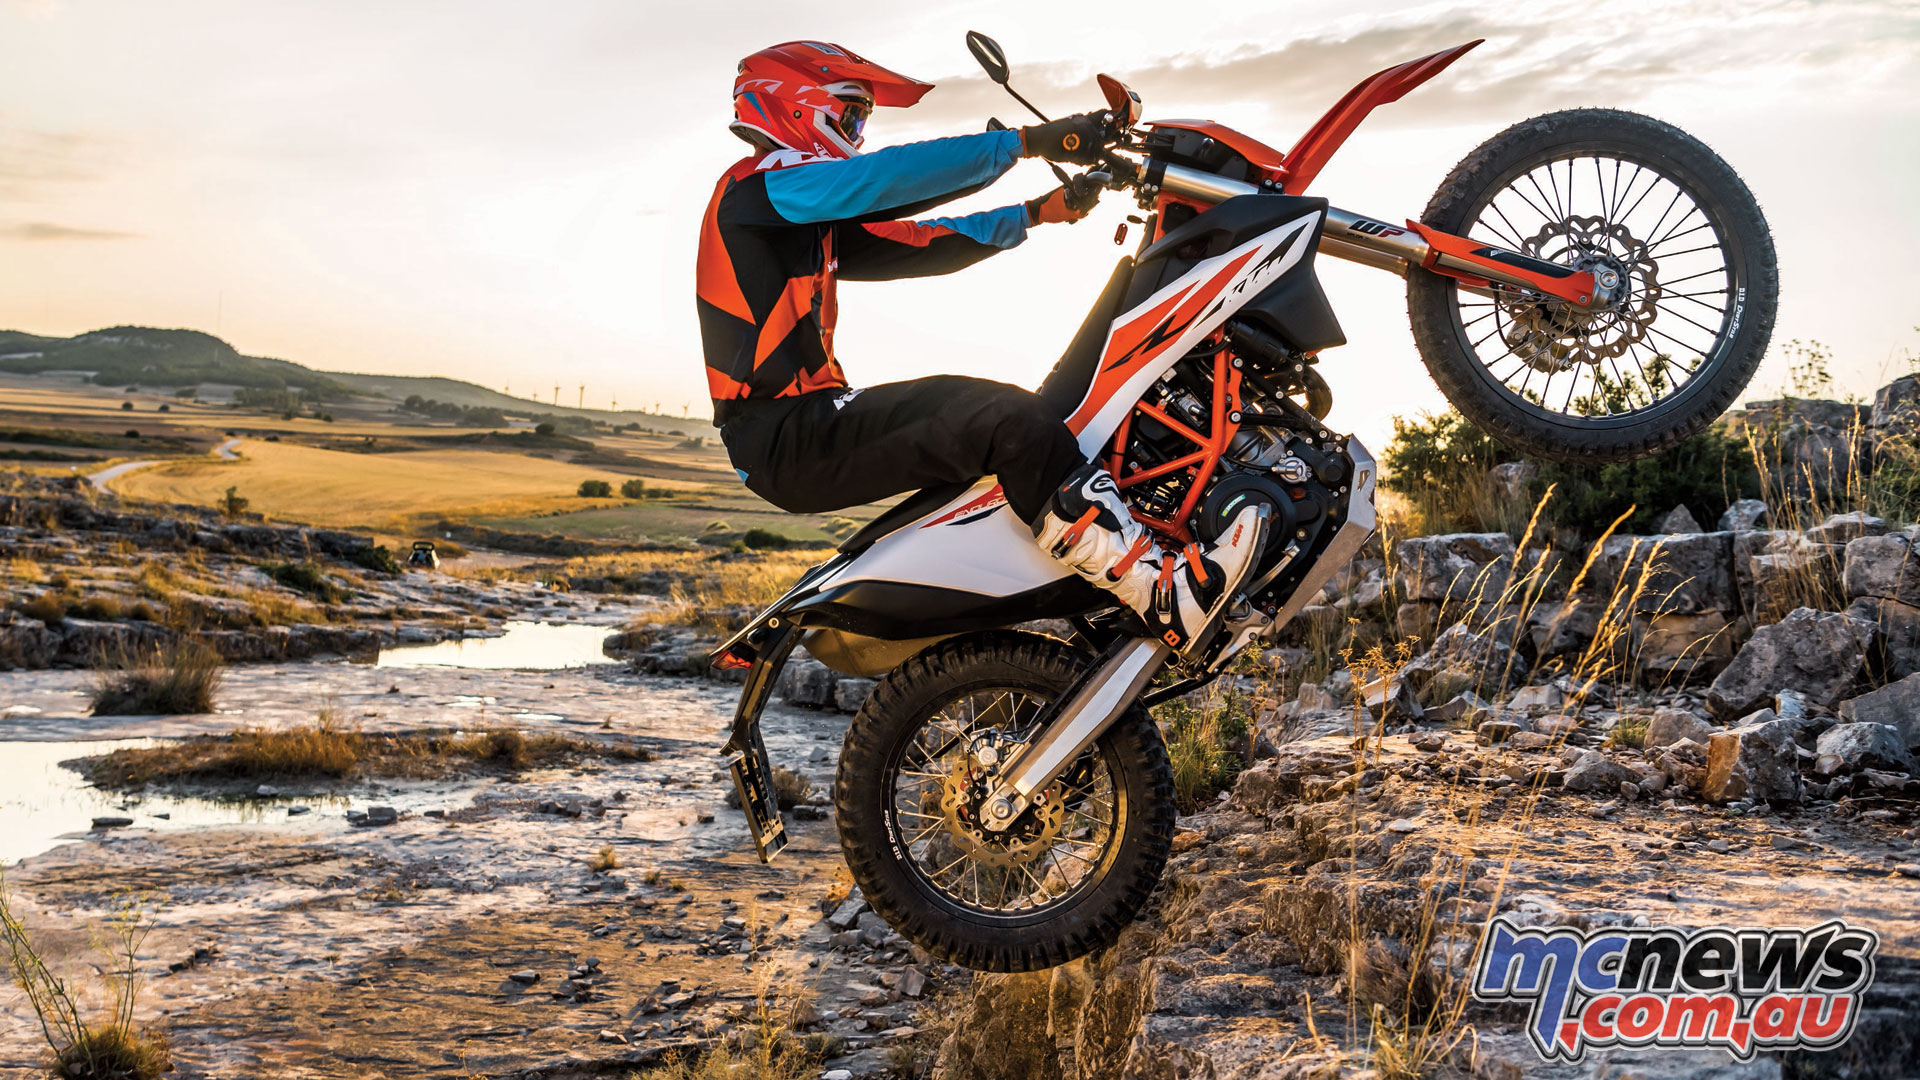 Marvelous 2019 Ktm 690 Enduro R More Power Smoother Power Mcnews Cjindustries Chair Design For Home Cjindustriesco